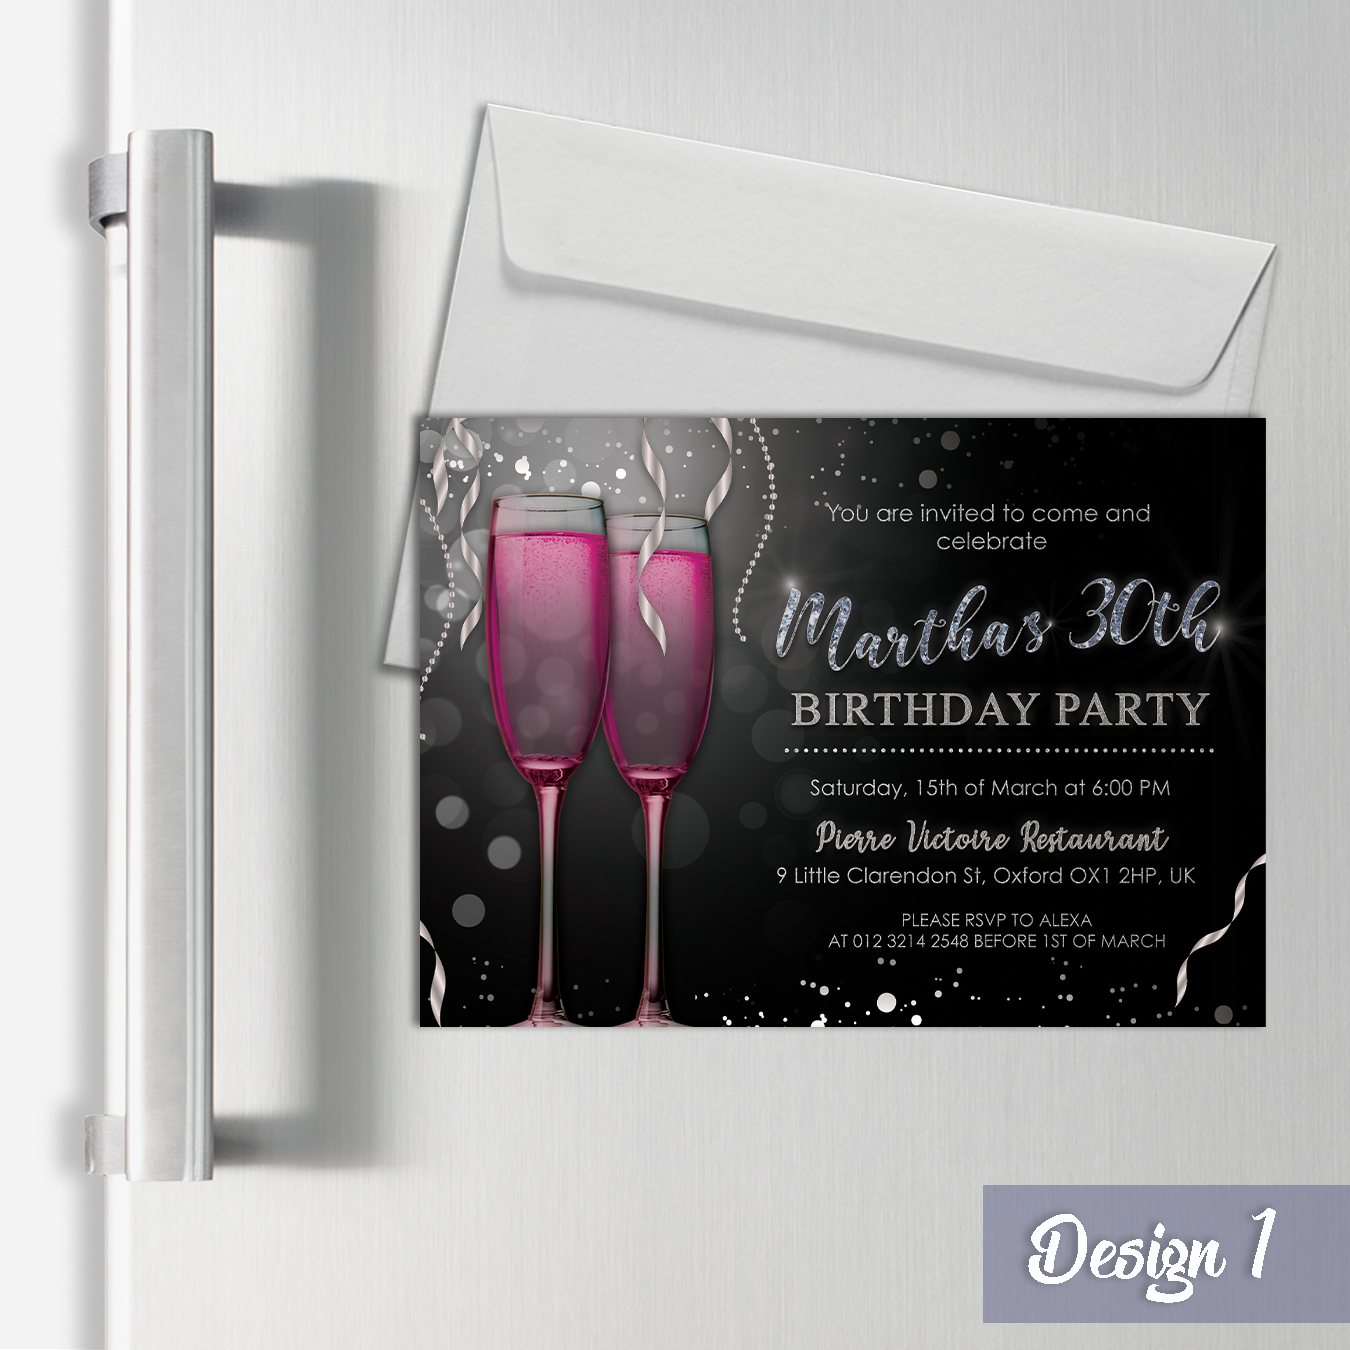 Personalised Champagne Invitation & Thank you Cards Birthday Party   A6 Magnets